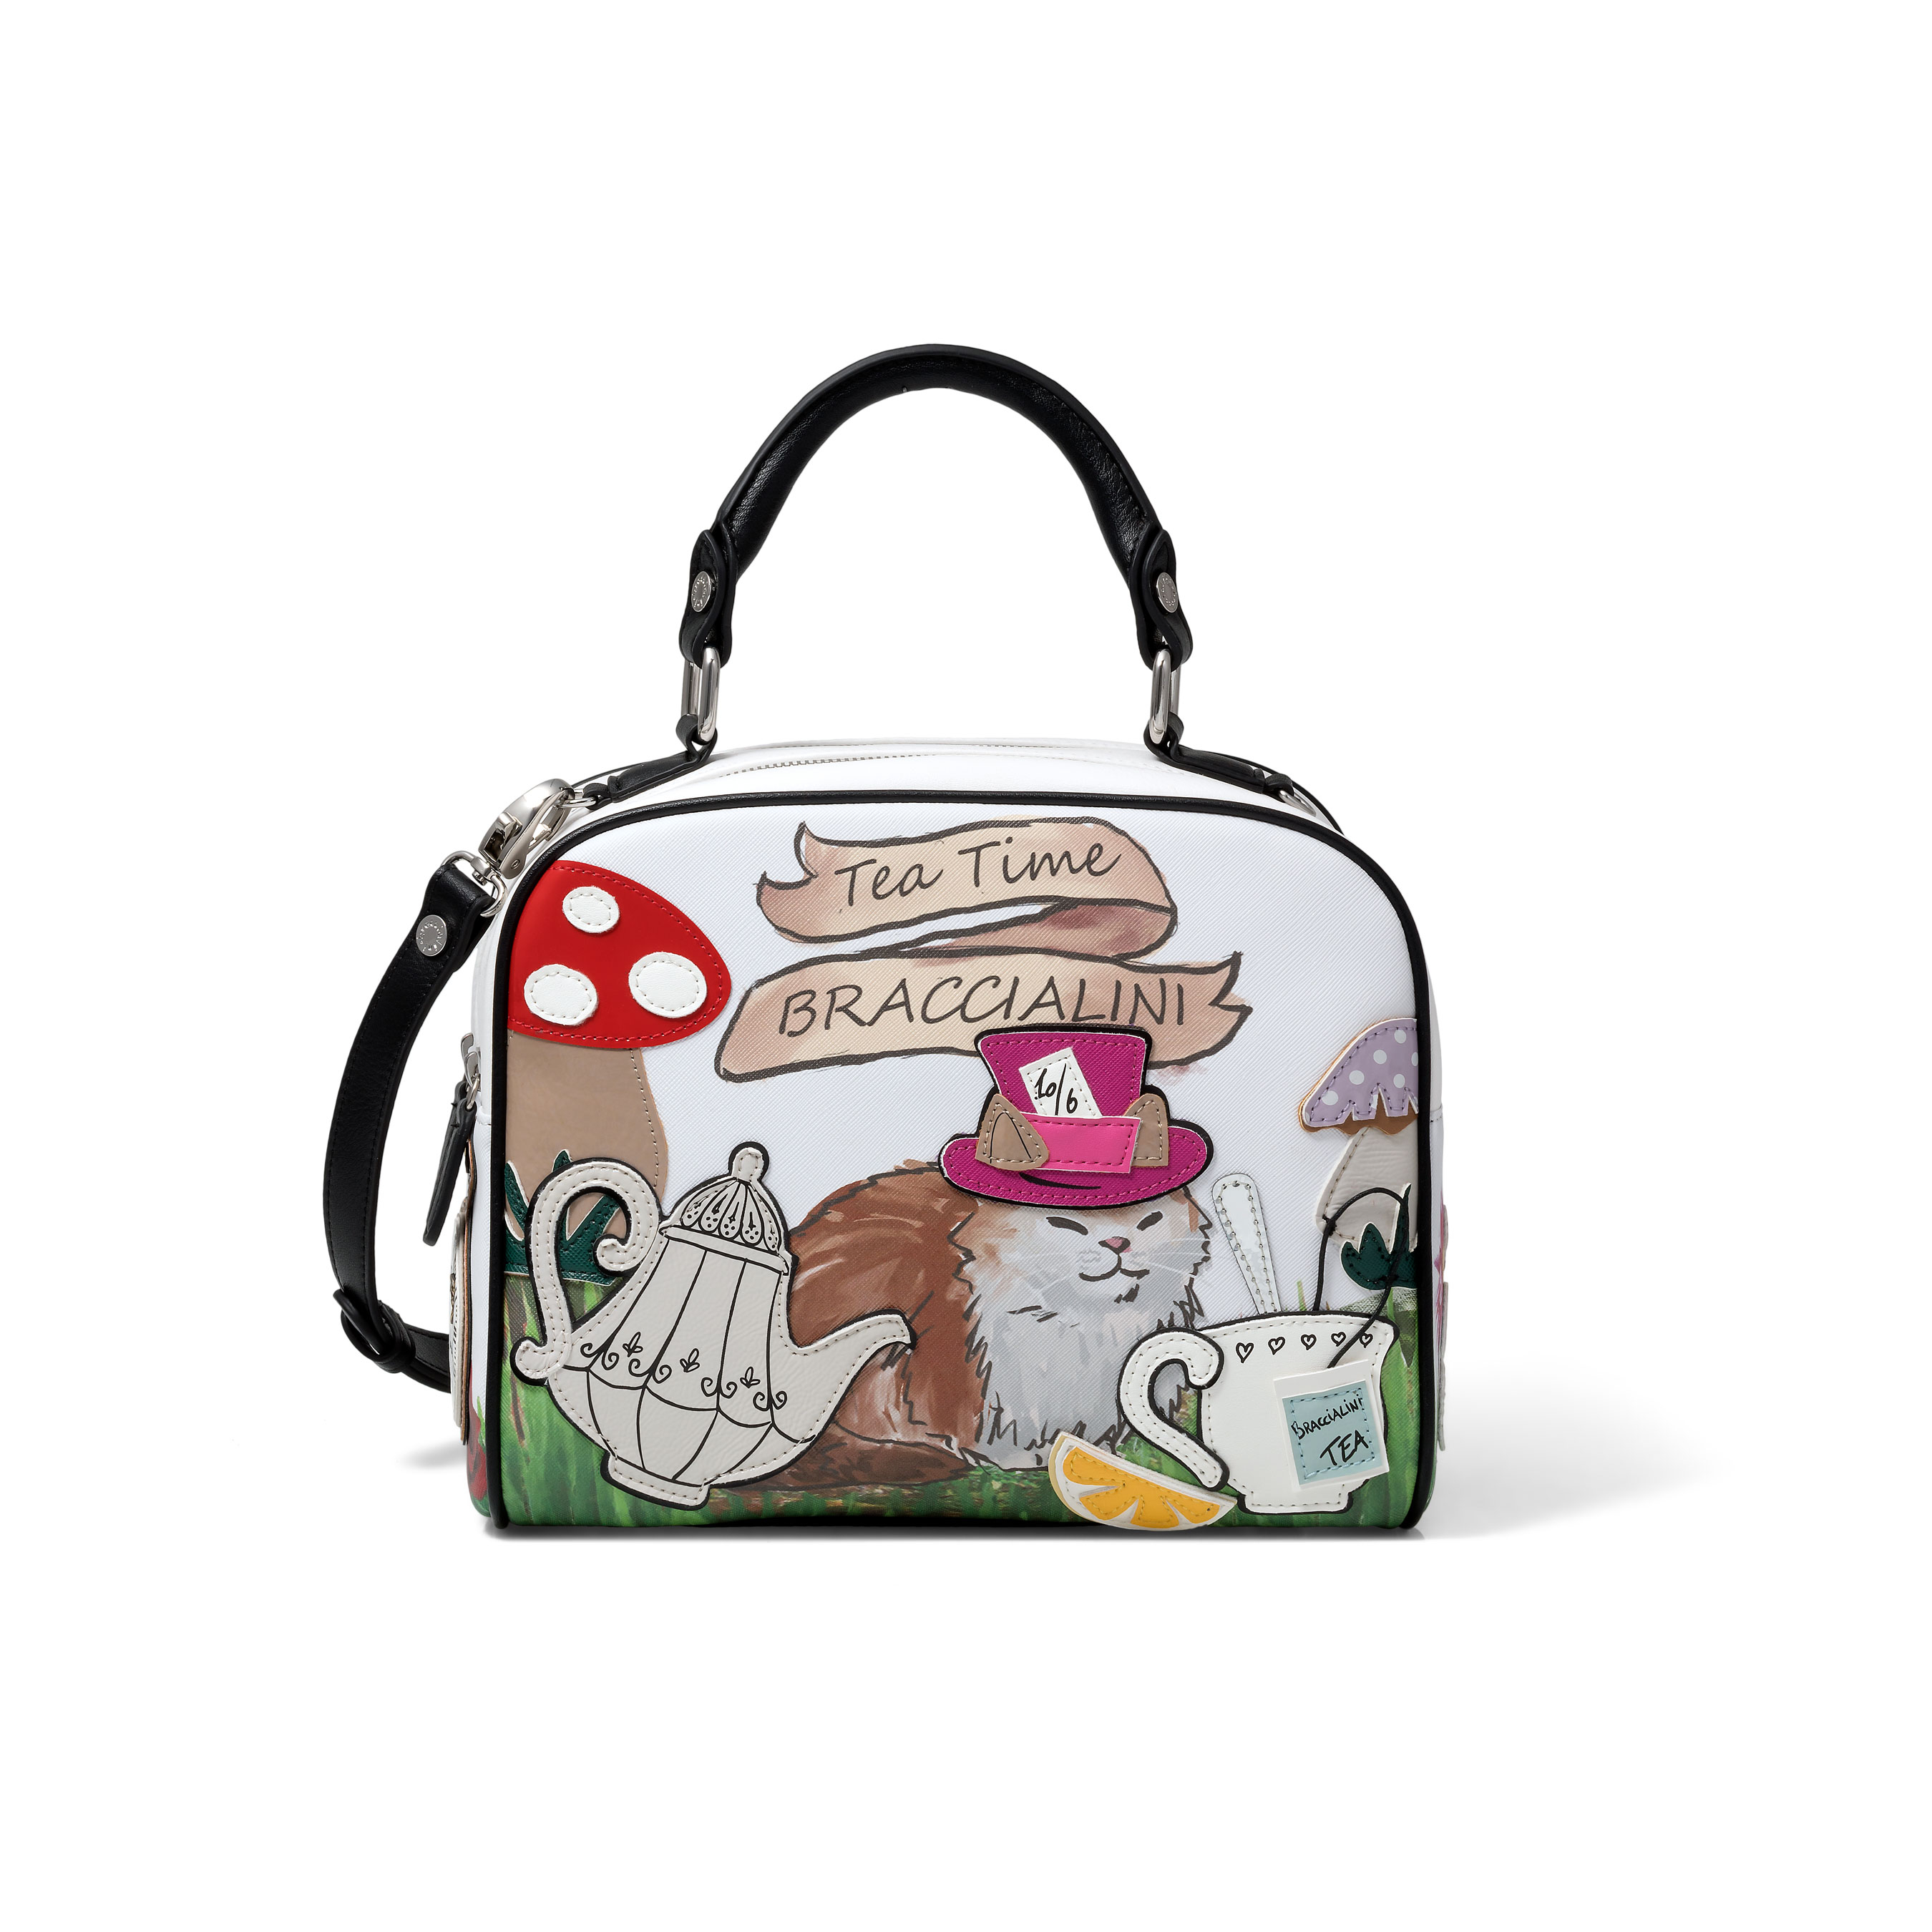 SHOPPING ON LINE BRACCIALINI BORSA A MANO ALLROUND NEW COLLECTION SPRING/SUMMER 2021